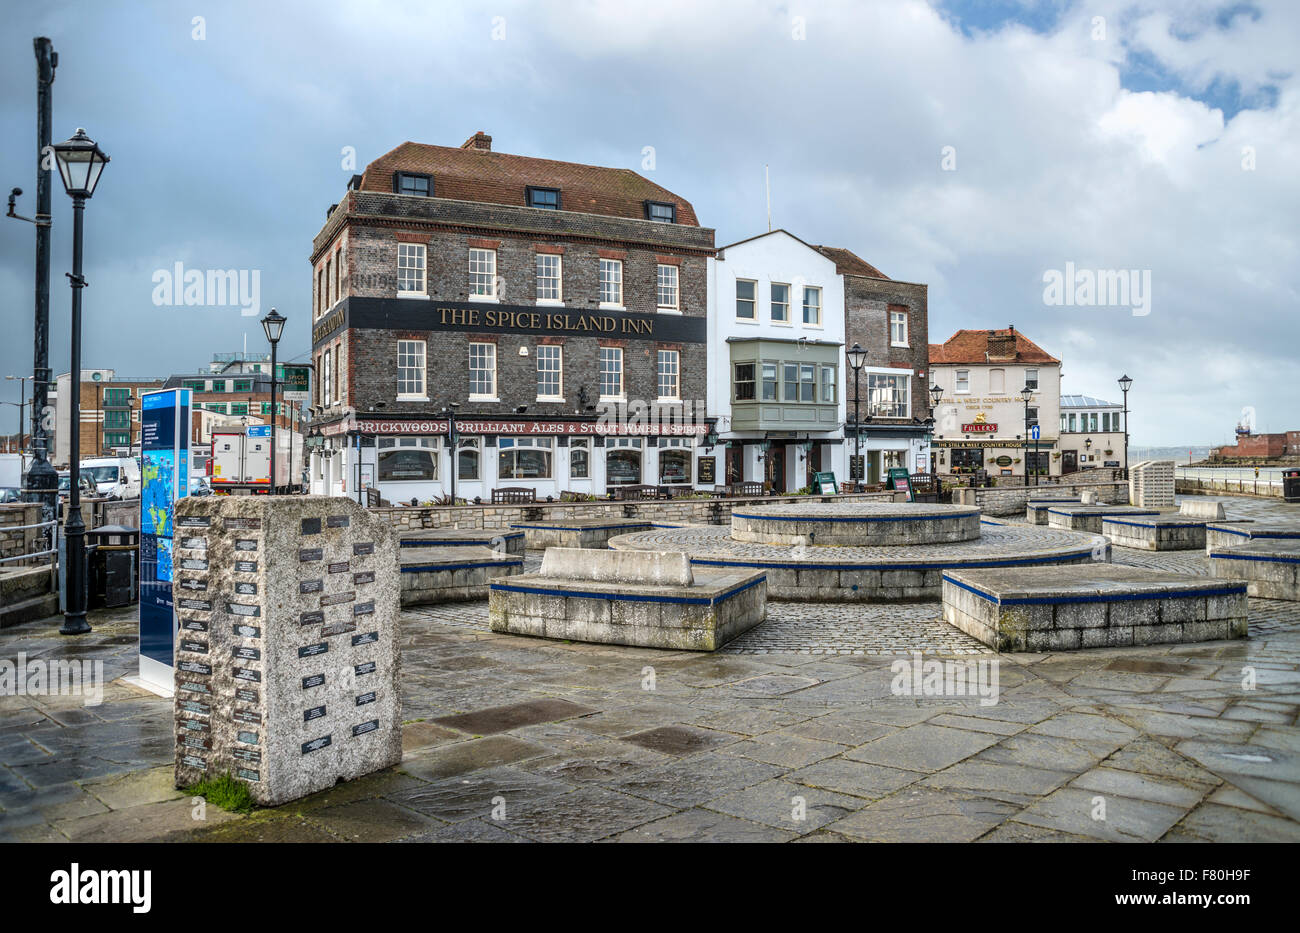 Historical houses and pubs at the Spice Quay at Portsmouth Harbour, Hampshire, England, United Kingdom - Stock Image